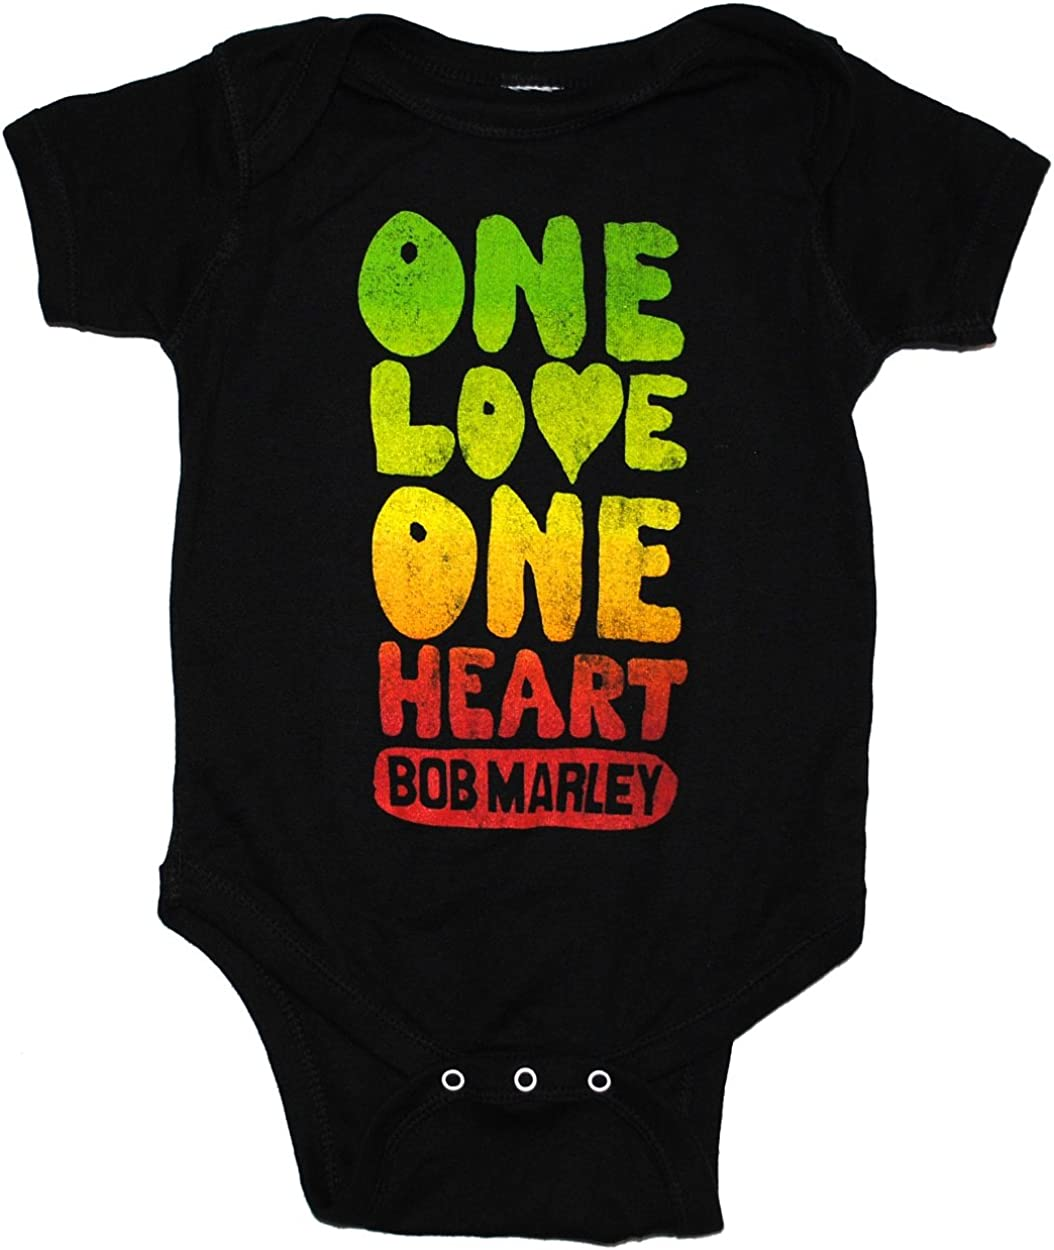 Bob Marley One Love Heart Baby Infant Snapsuit Romper